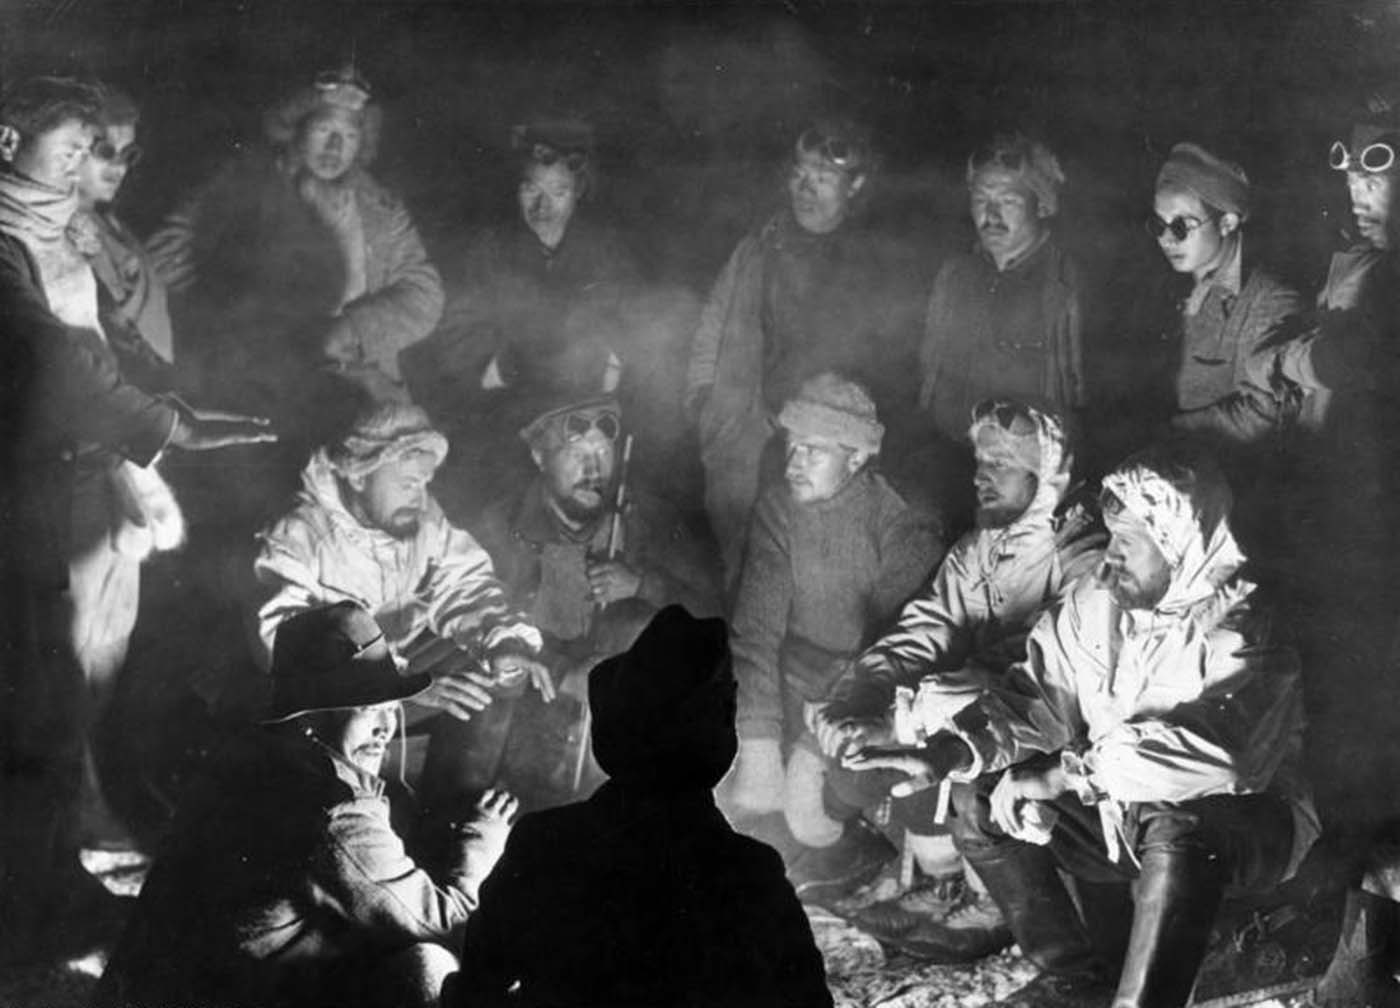 Photograph of the expedition.